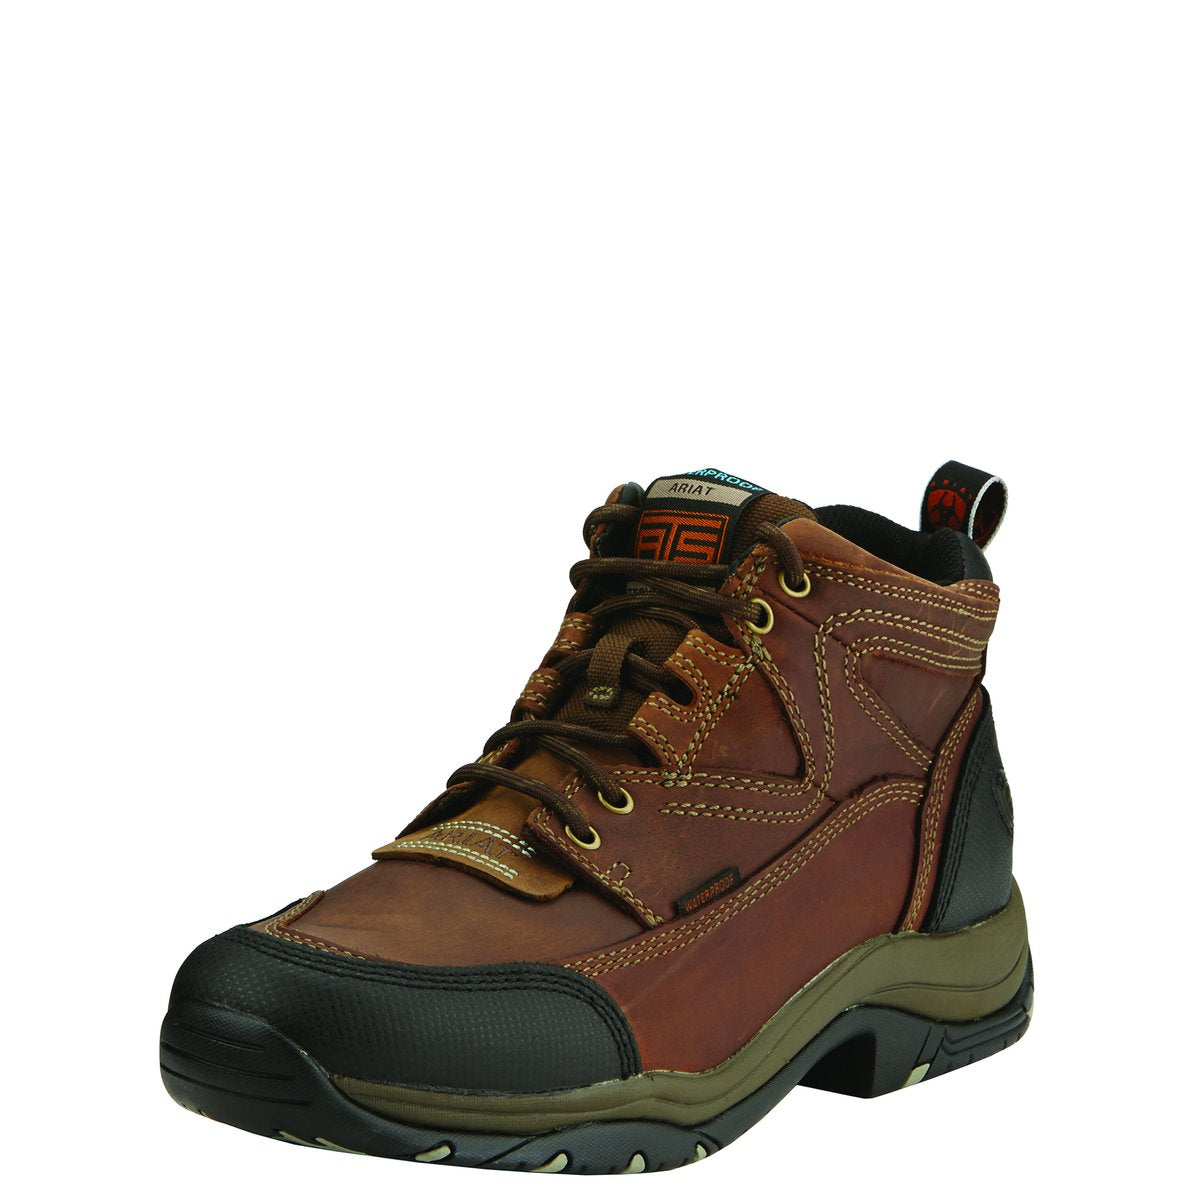 Ariat Mens Duraterrain H20 Boots